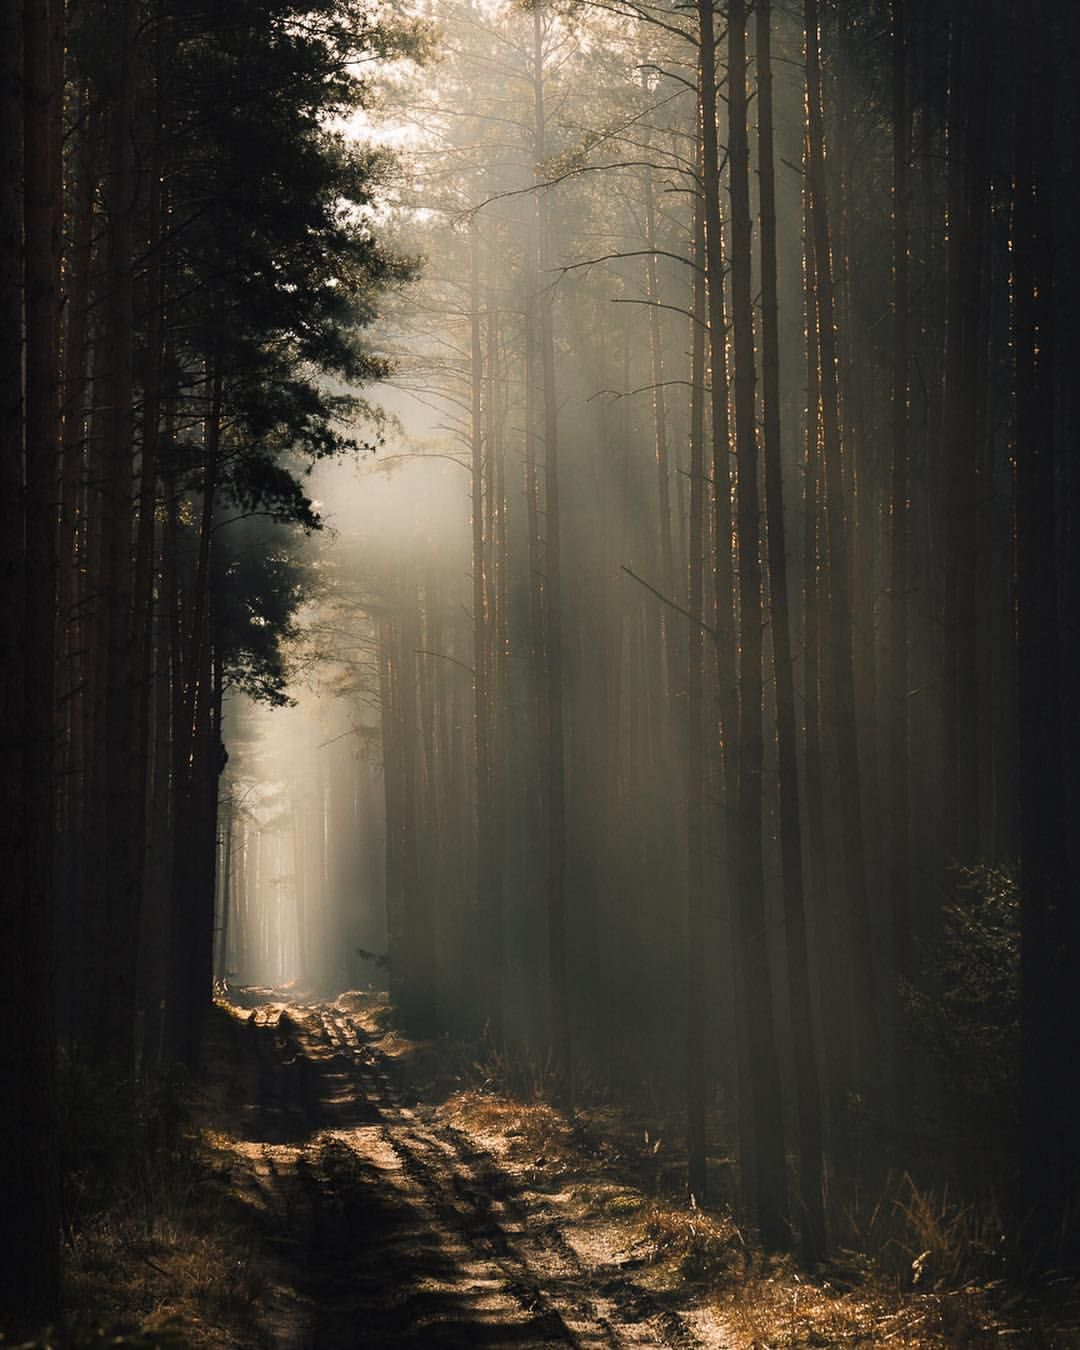 Pin By Ghost On Lost In The Woods In 2020 Aesthetic Photography Nature Forest Pictures Forest Landscape